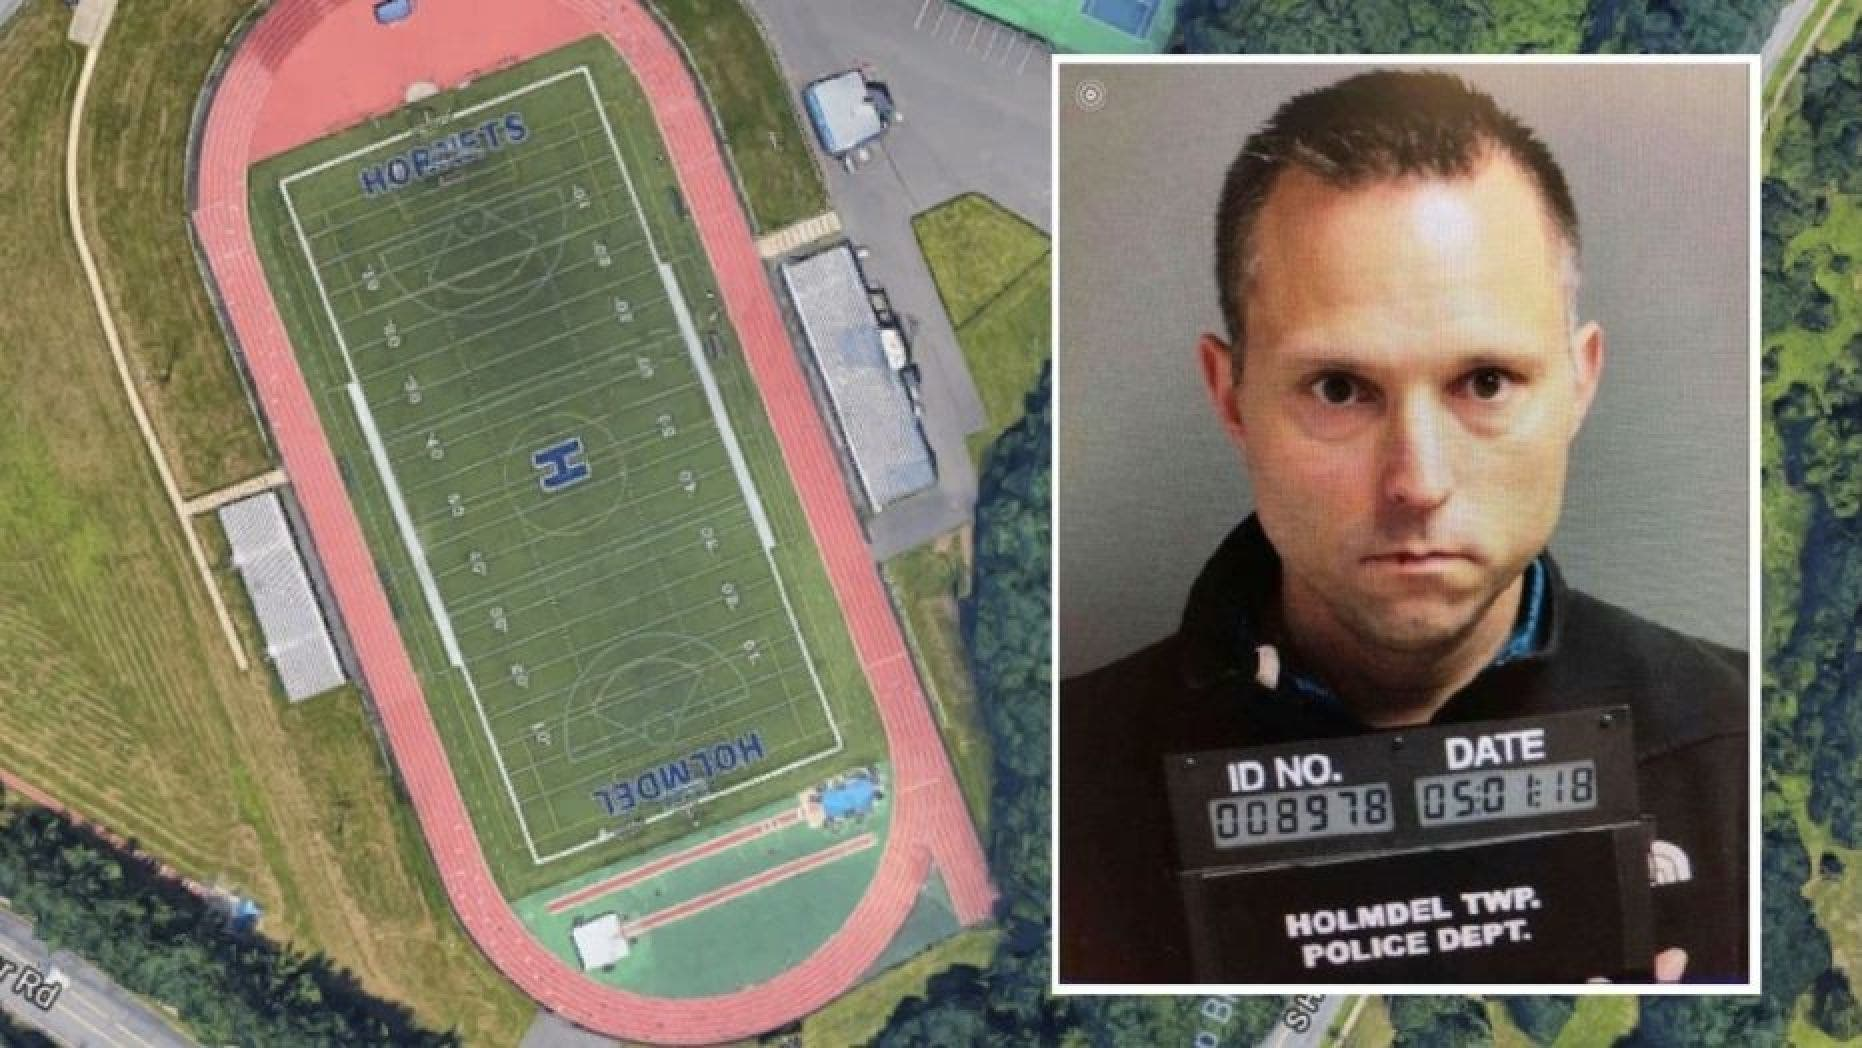 Former New Jersey schools superintendent Thomas Tramaglini, 42, pleaded guilty to defecating in public. He was caught pooping near a high school athletic field.